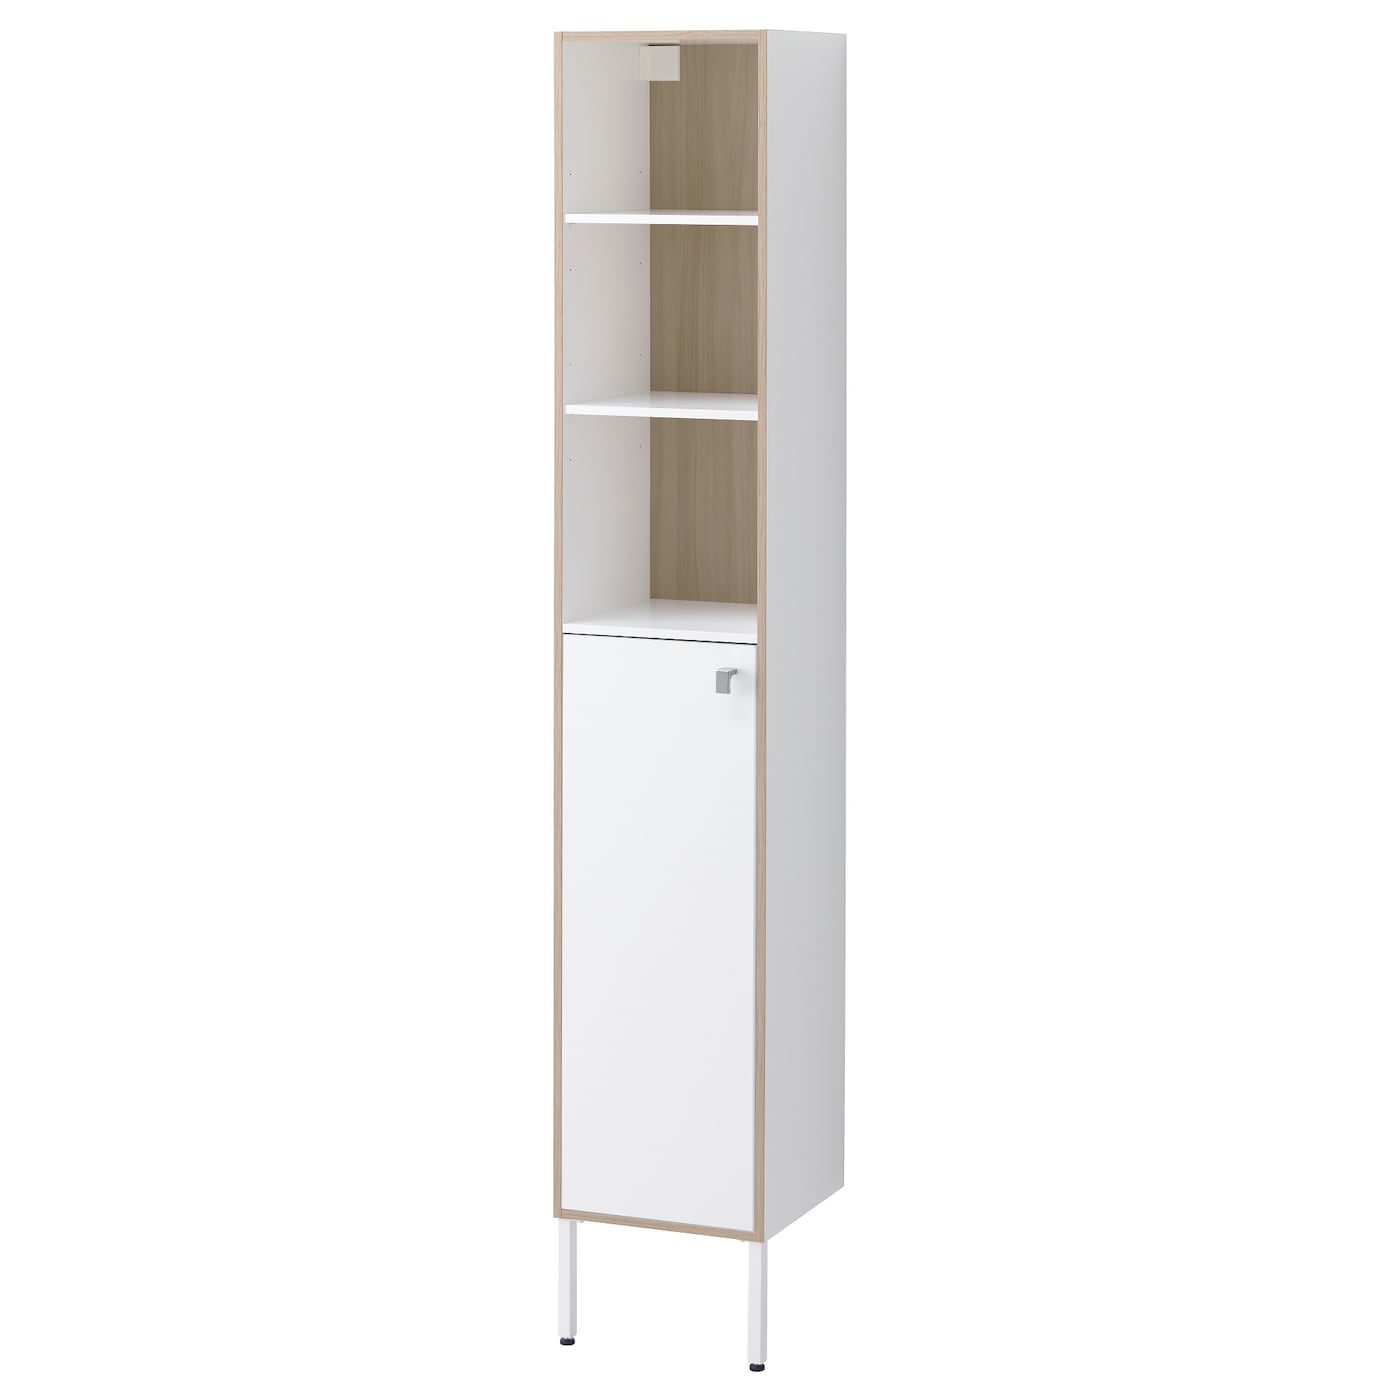 Bathroom cabinets tall bathroom cabinets ikea for Bathroom cabinets 25cm wide